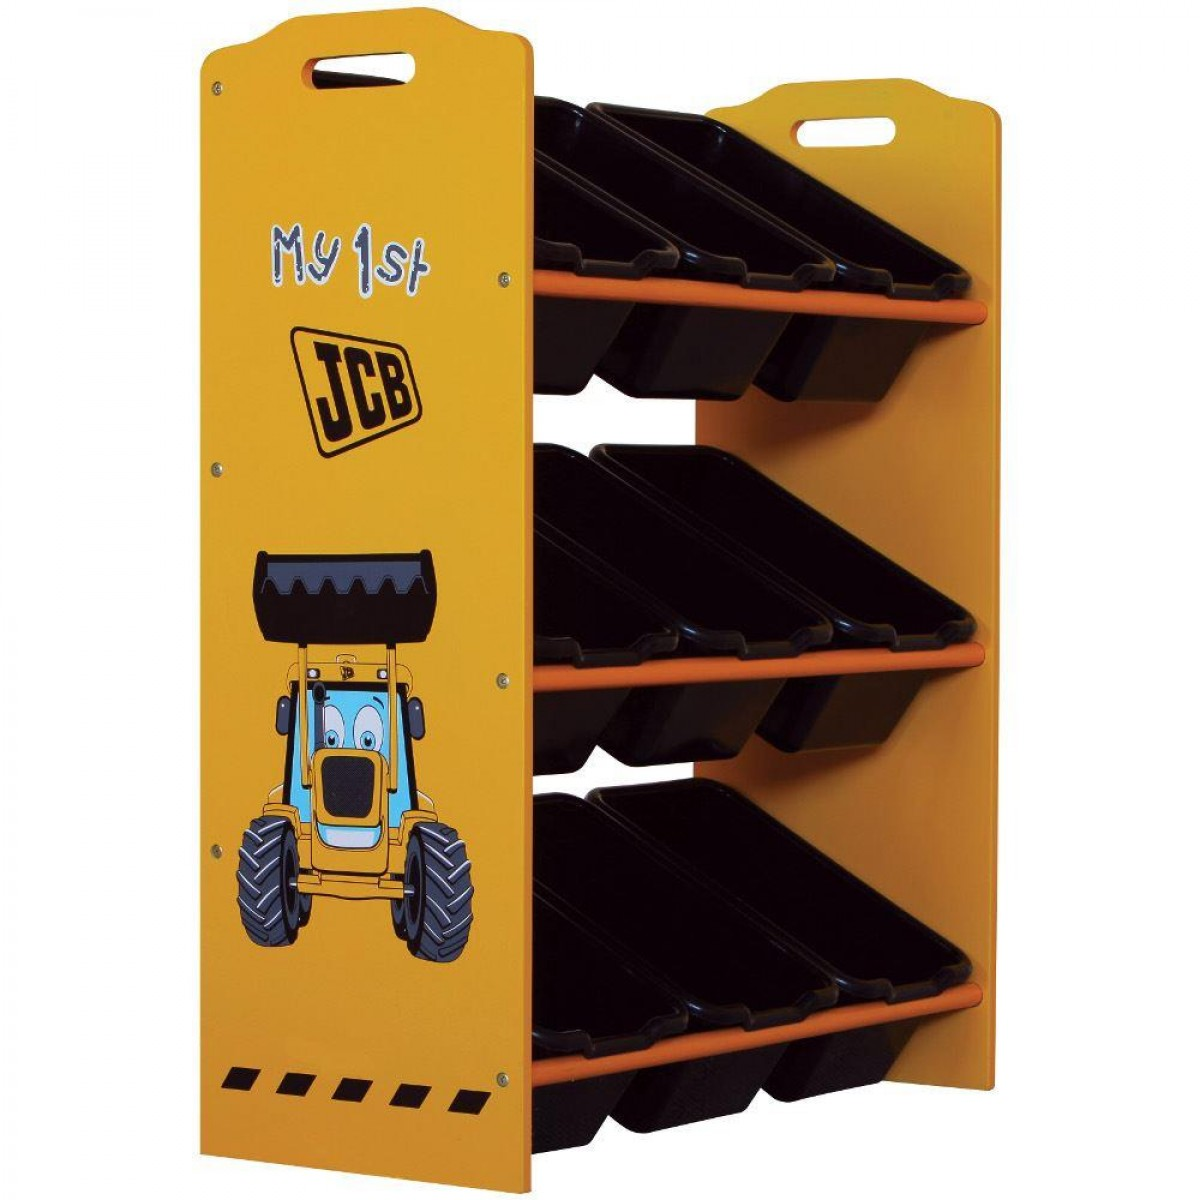 JCB Yellow Children's Digger 9 Bin Storage Unit